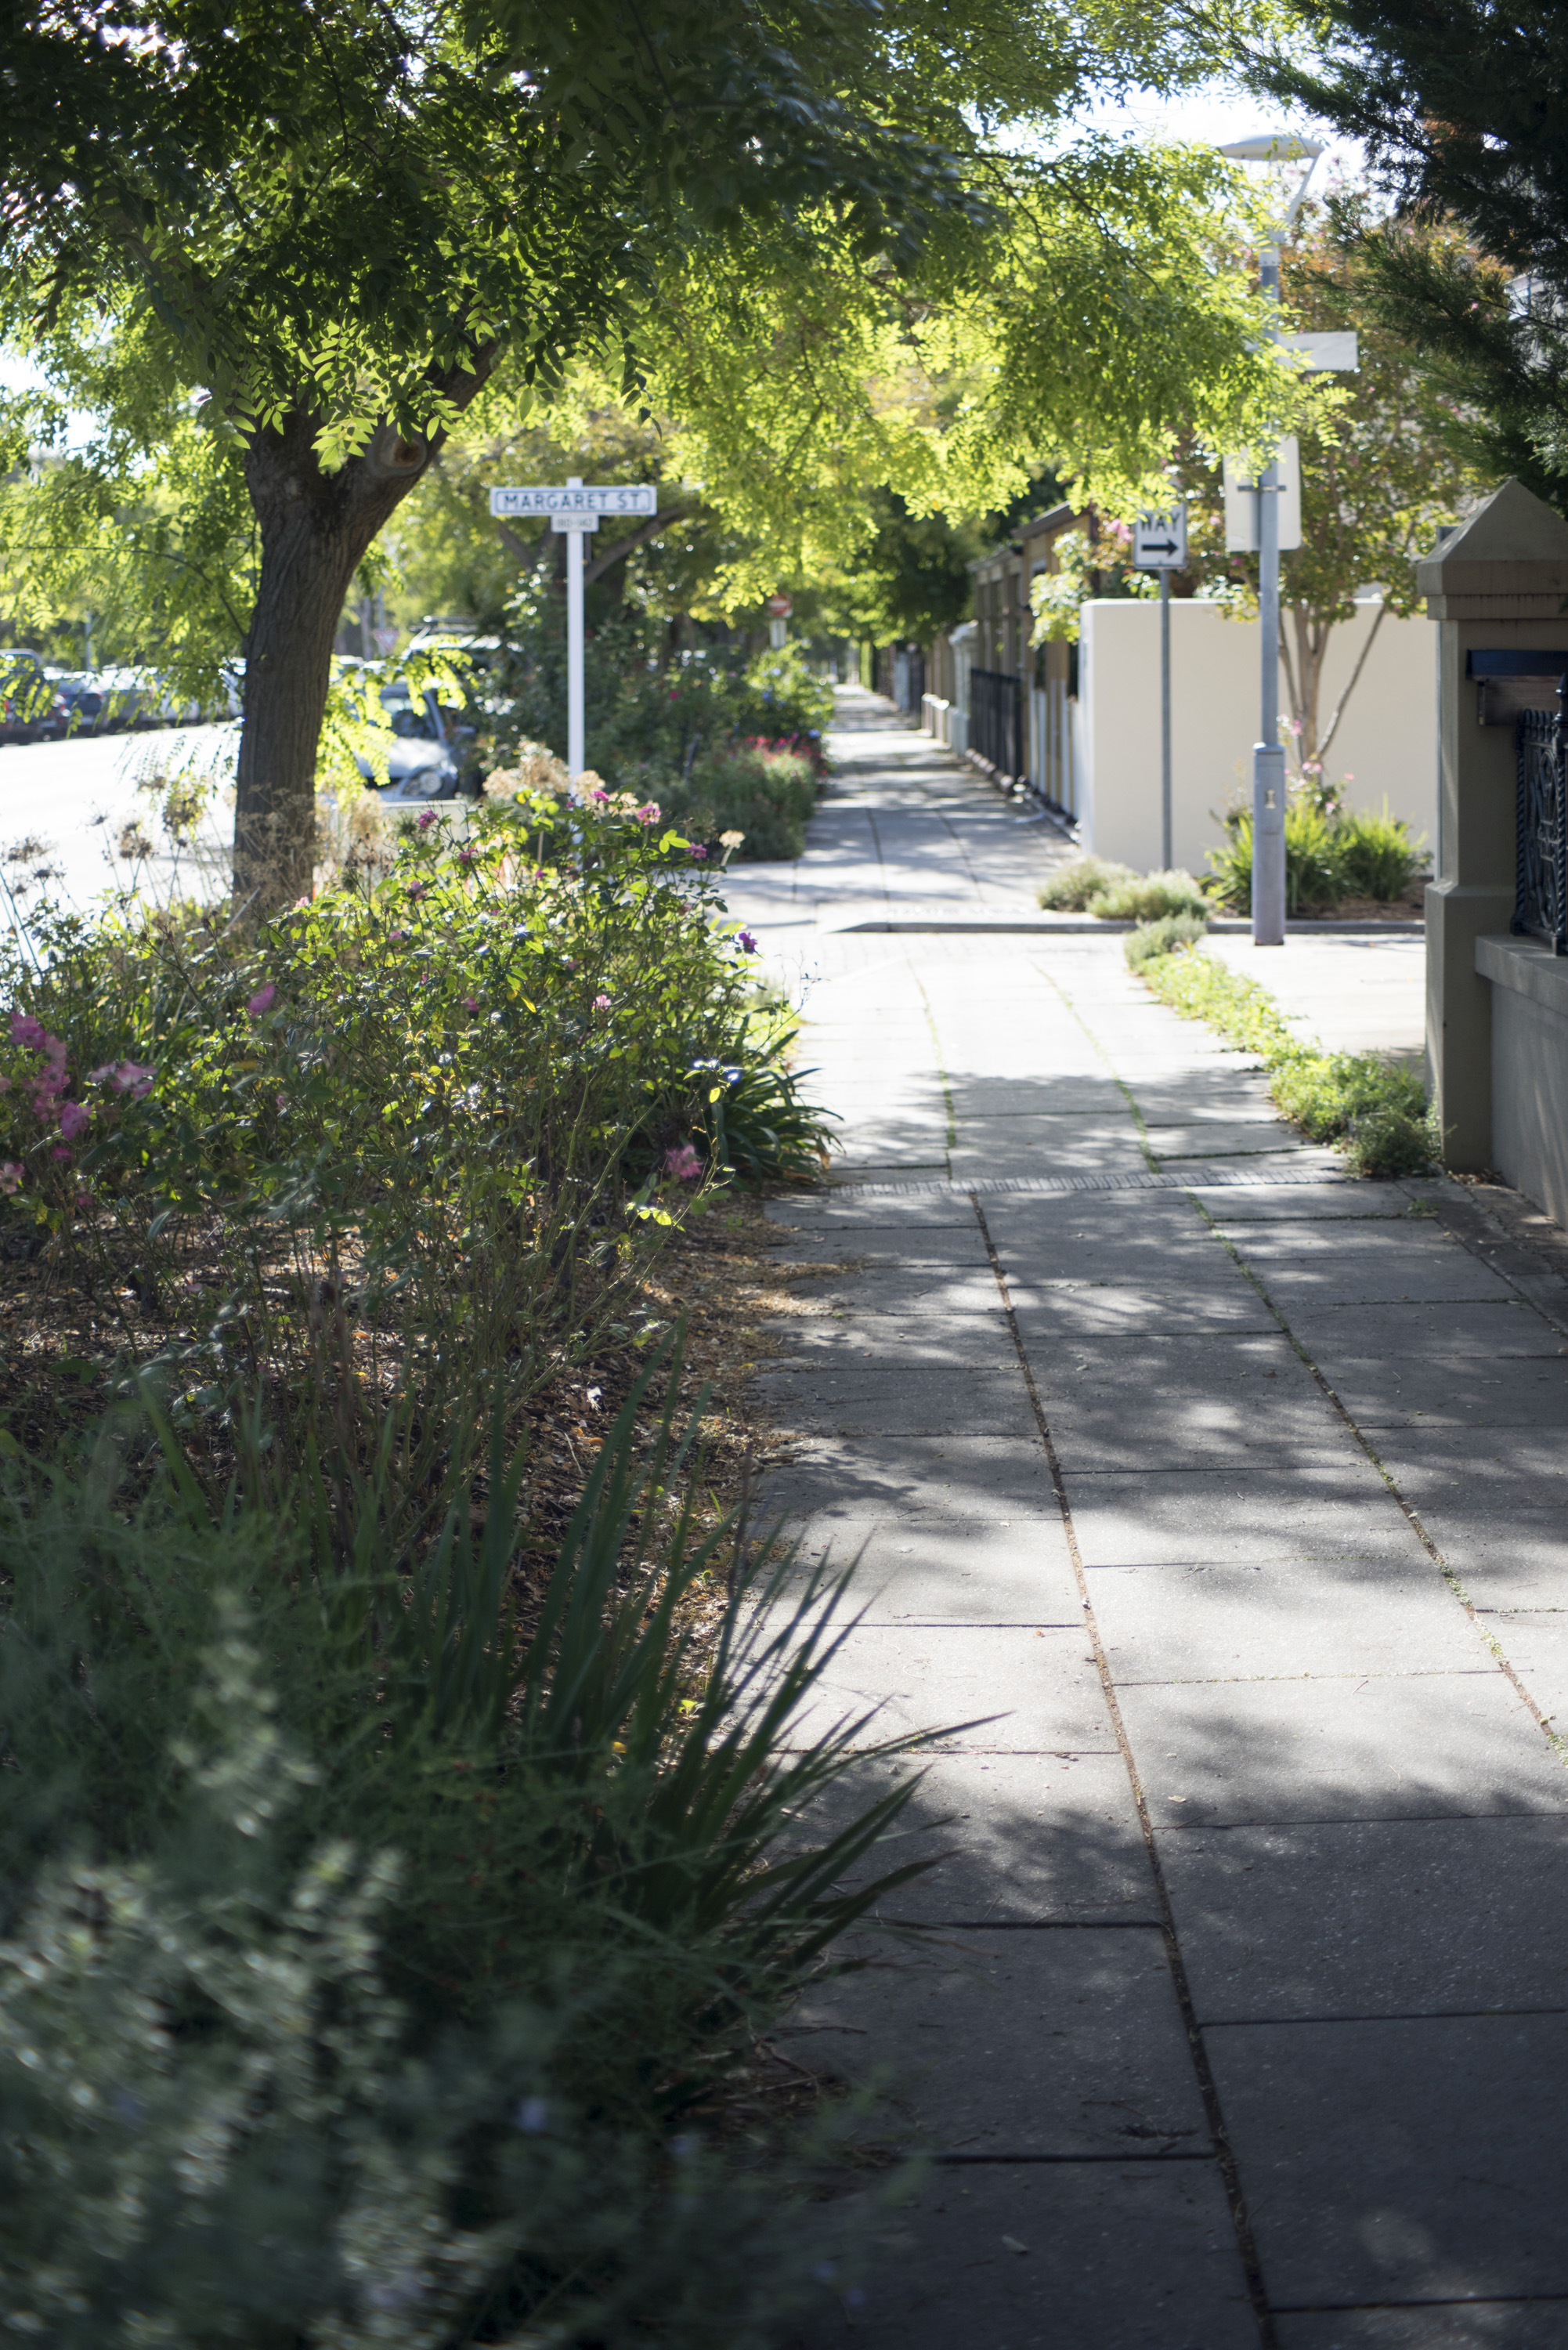 Deserted sidewalk in verdant Adelaide, Australia shaded by leafy green trees with shrubs and flowers